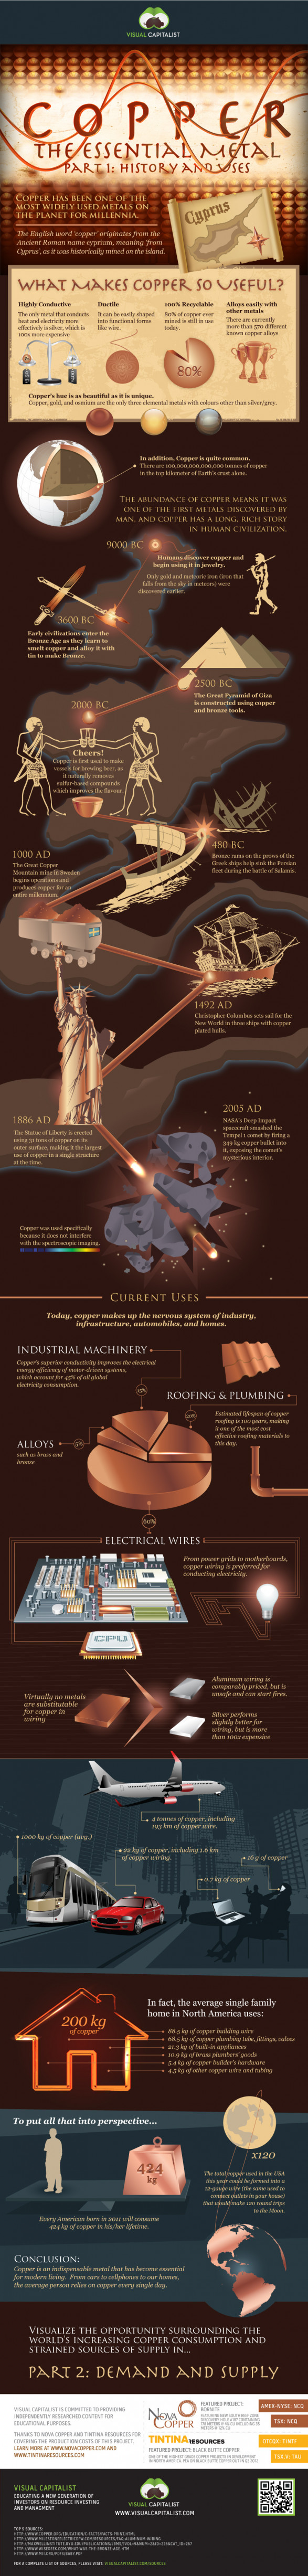 Copper - The Essential Metal (Part 1)